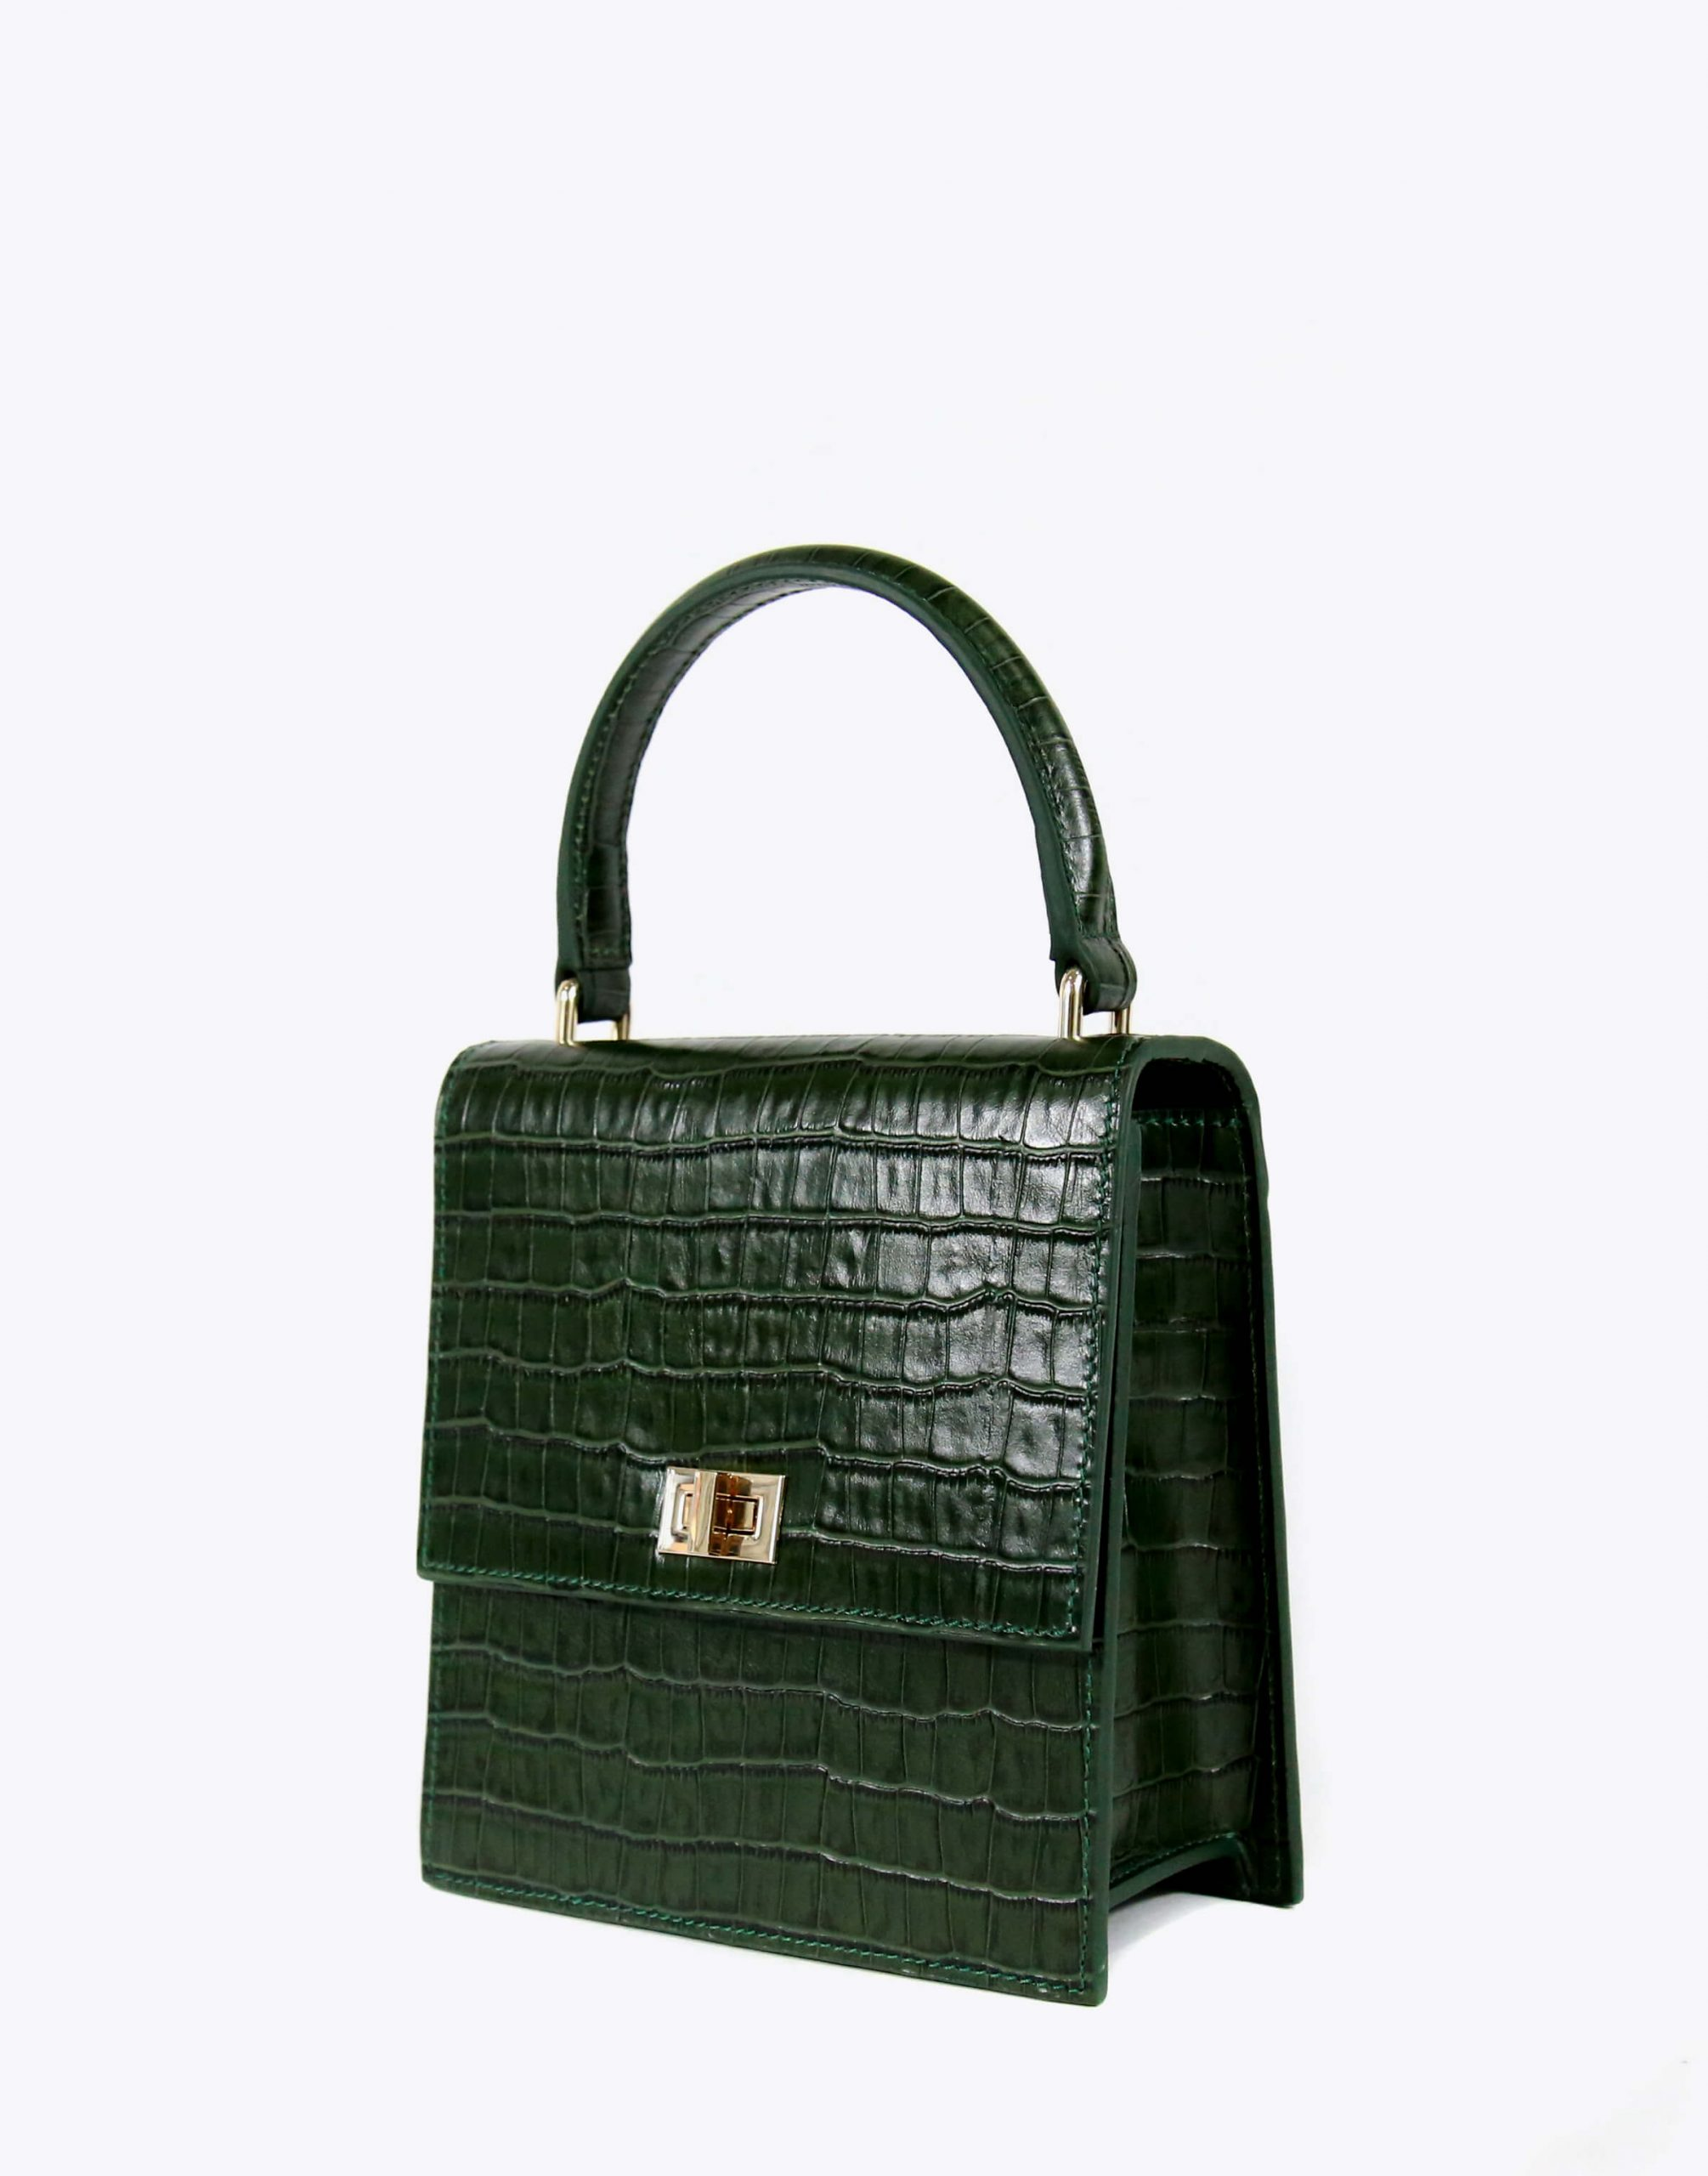 Neely & Chloe No. 19 Mini Lady Bag Croc Angle View Green